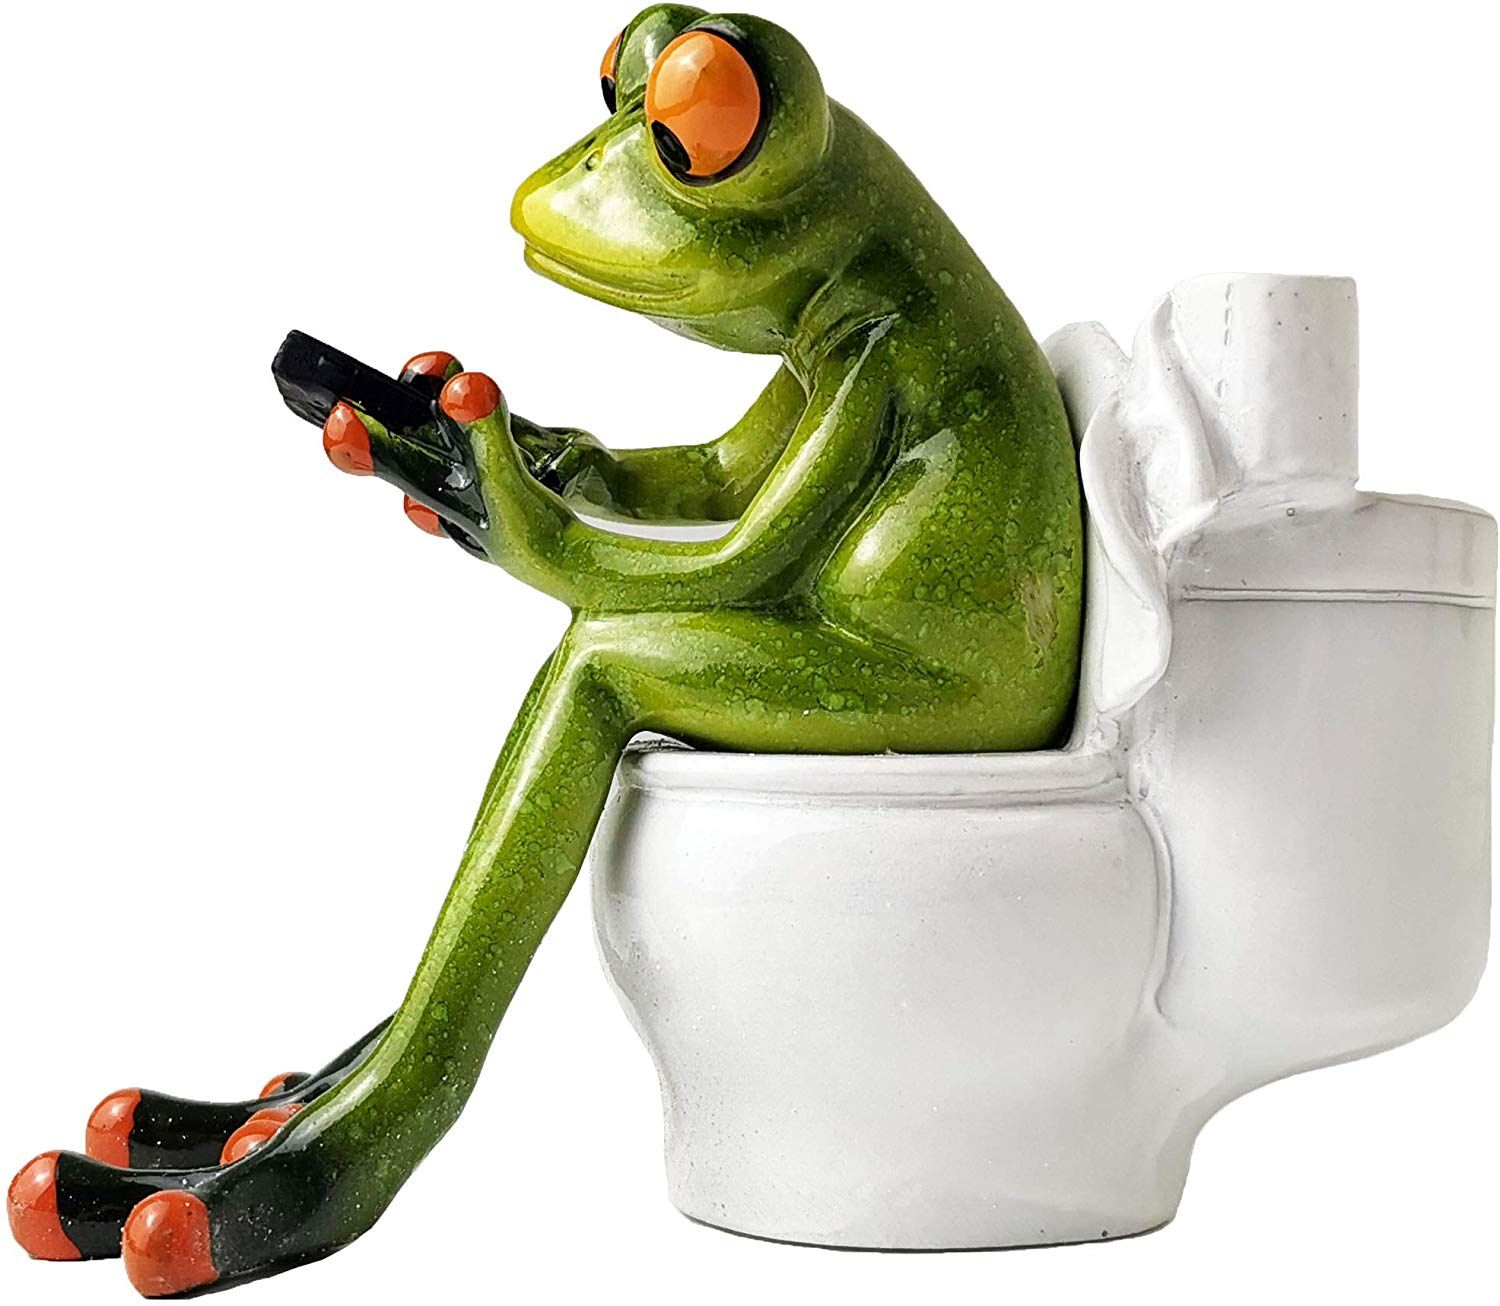 Adorable Red Eyed Tree Frog Sitting On Toilet And Texting Funny Red Eyed Tree Frog Frog Sitting Funny Decor